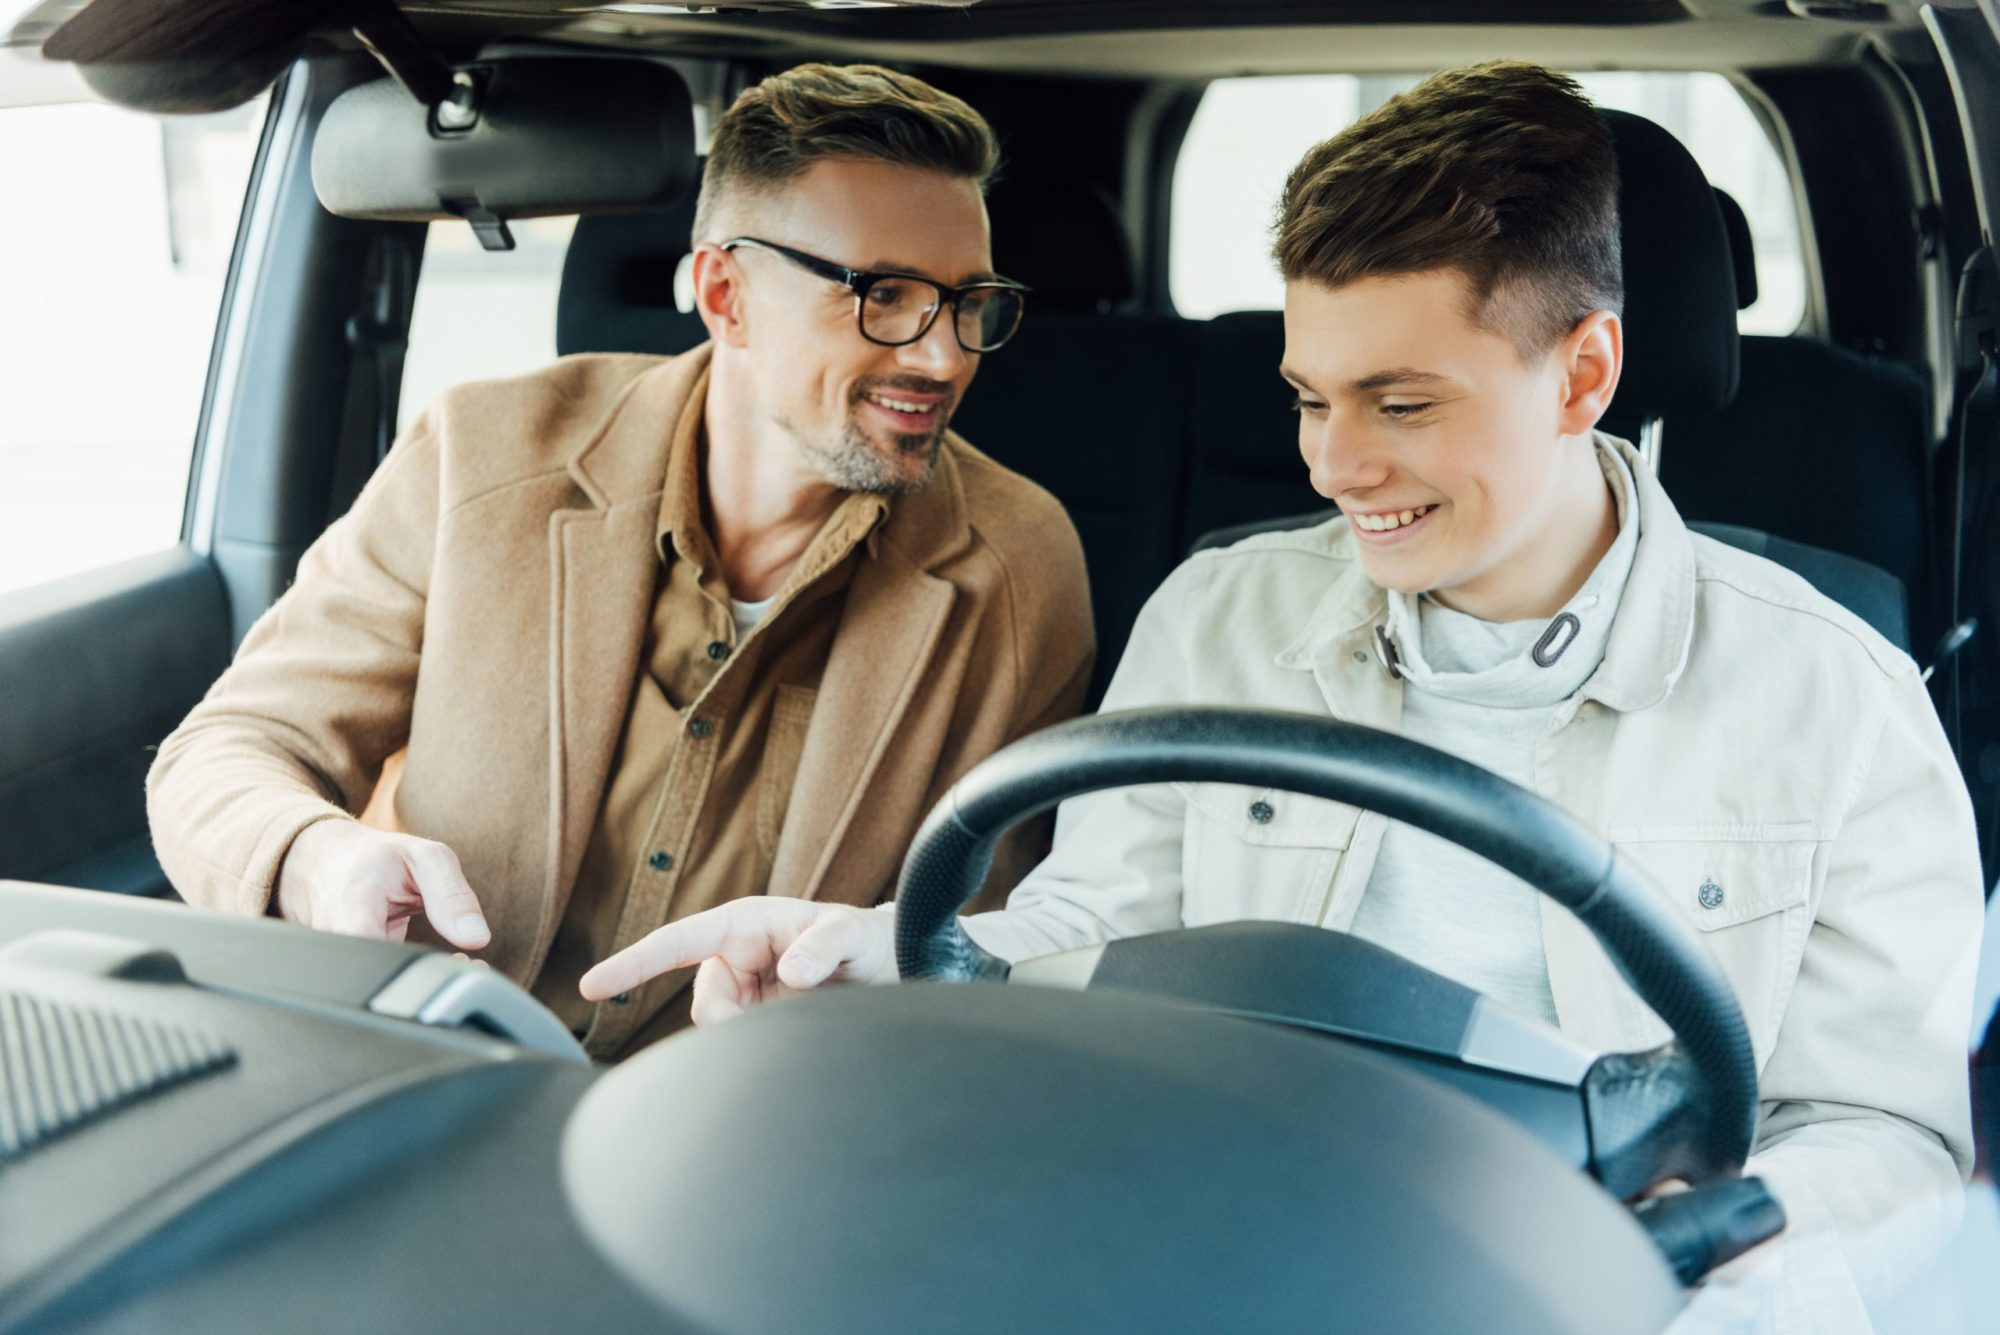 dad-teaching-son-how-to-drive